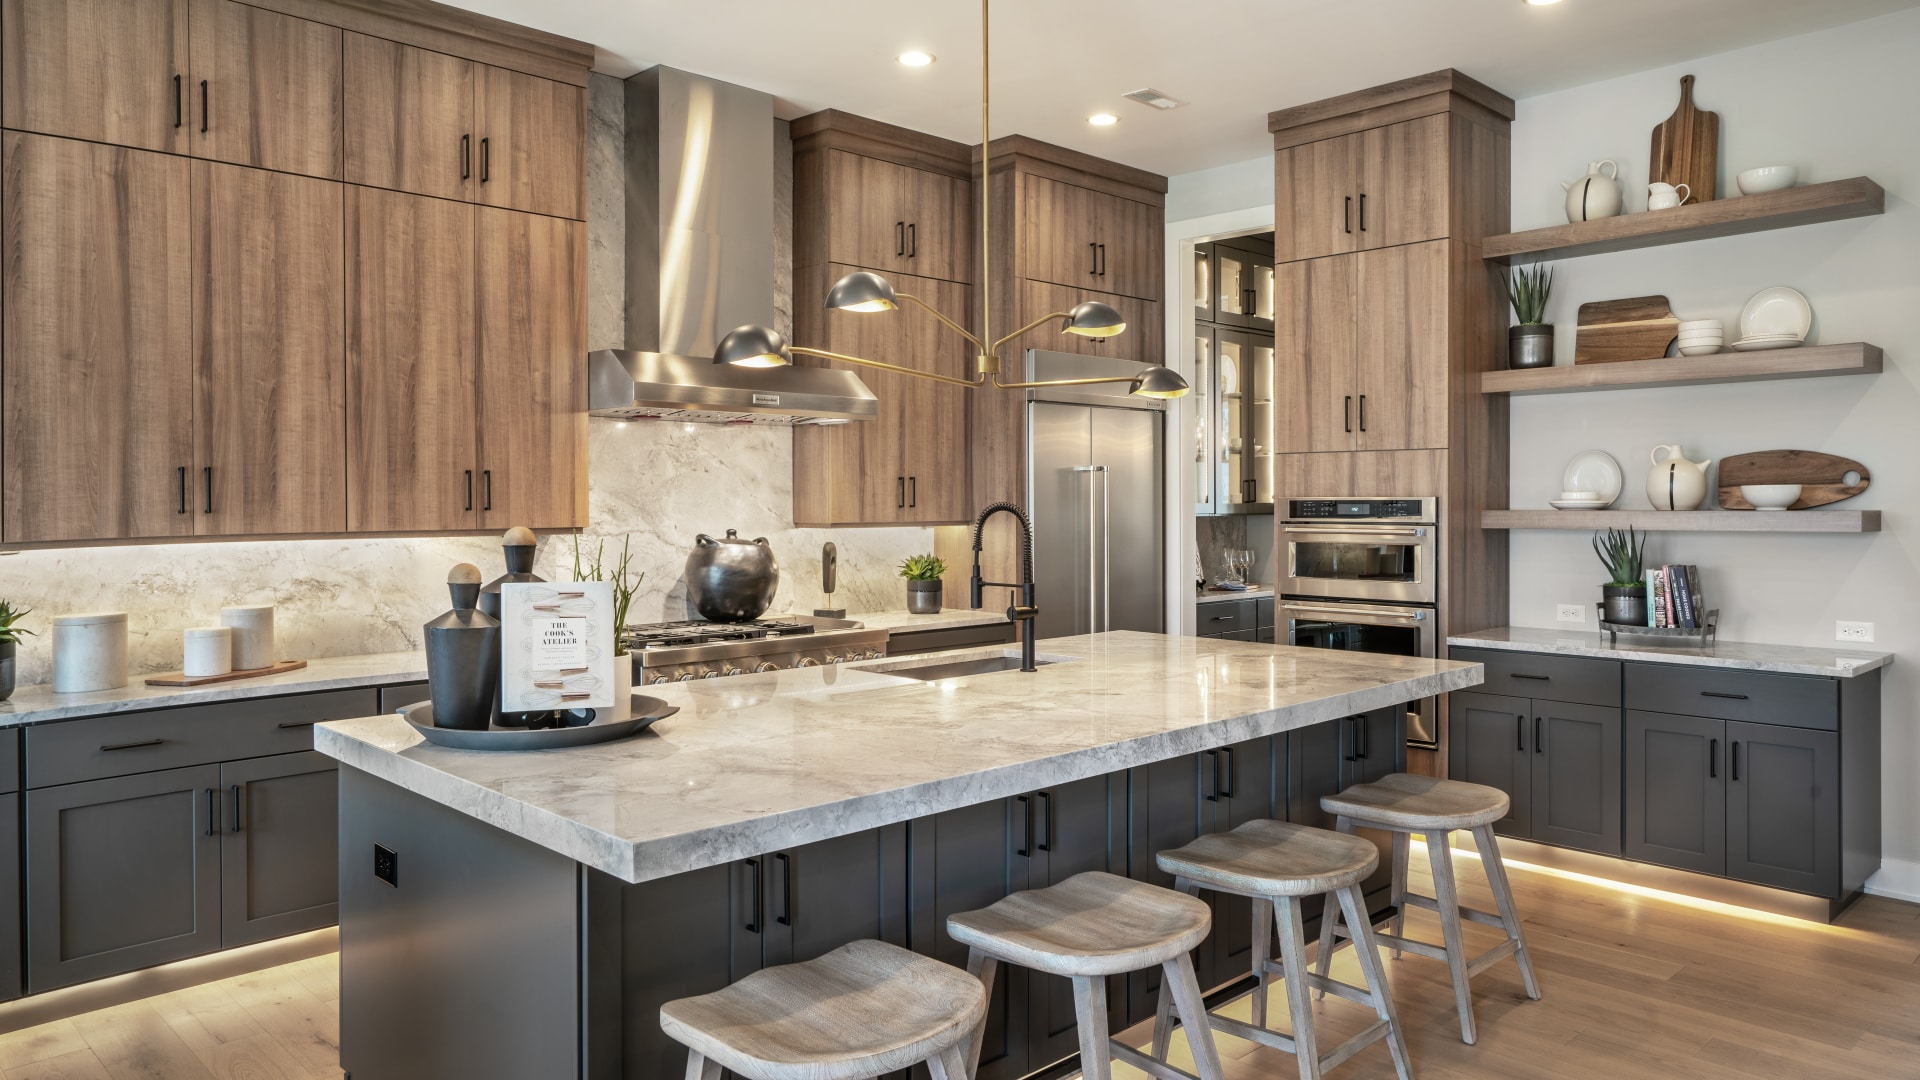 Gourmet kitchen includes large center island, ample counter and cabinet space, and pantry storage